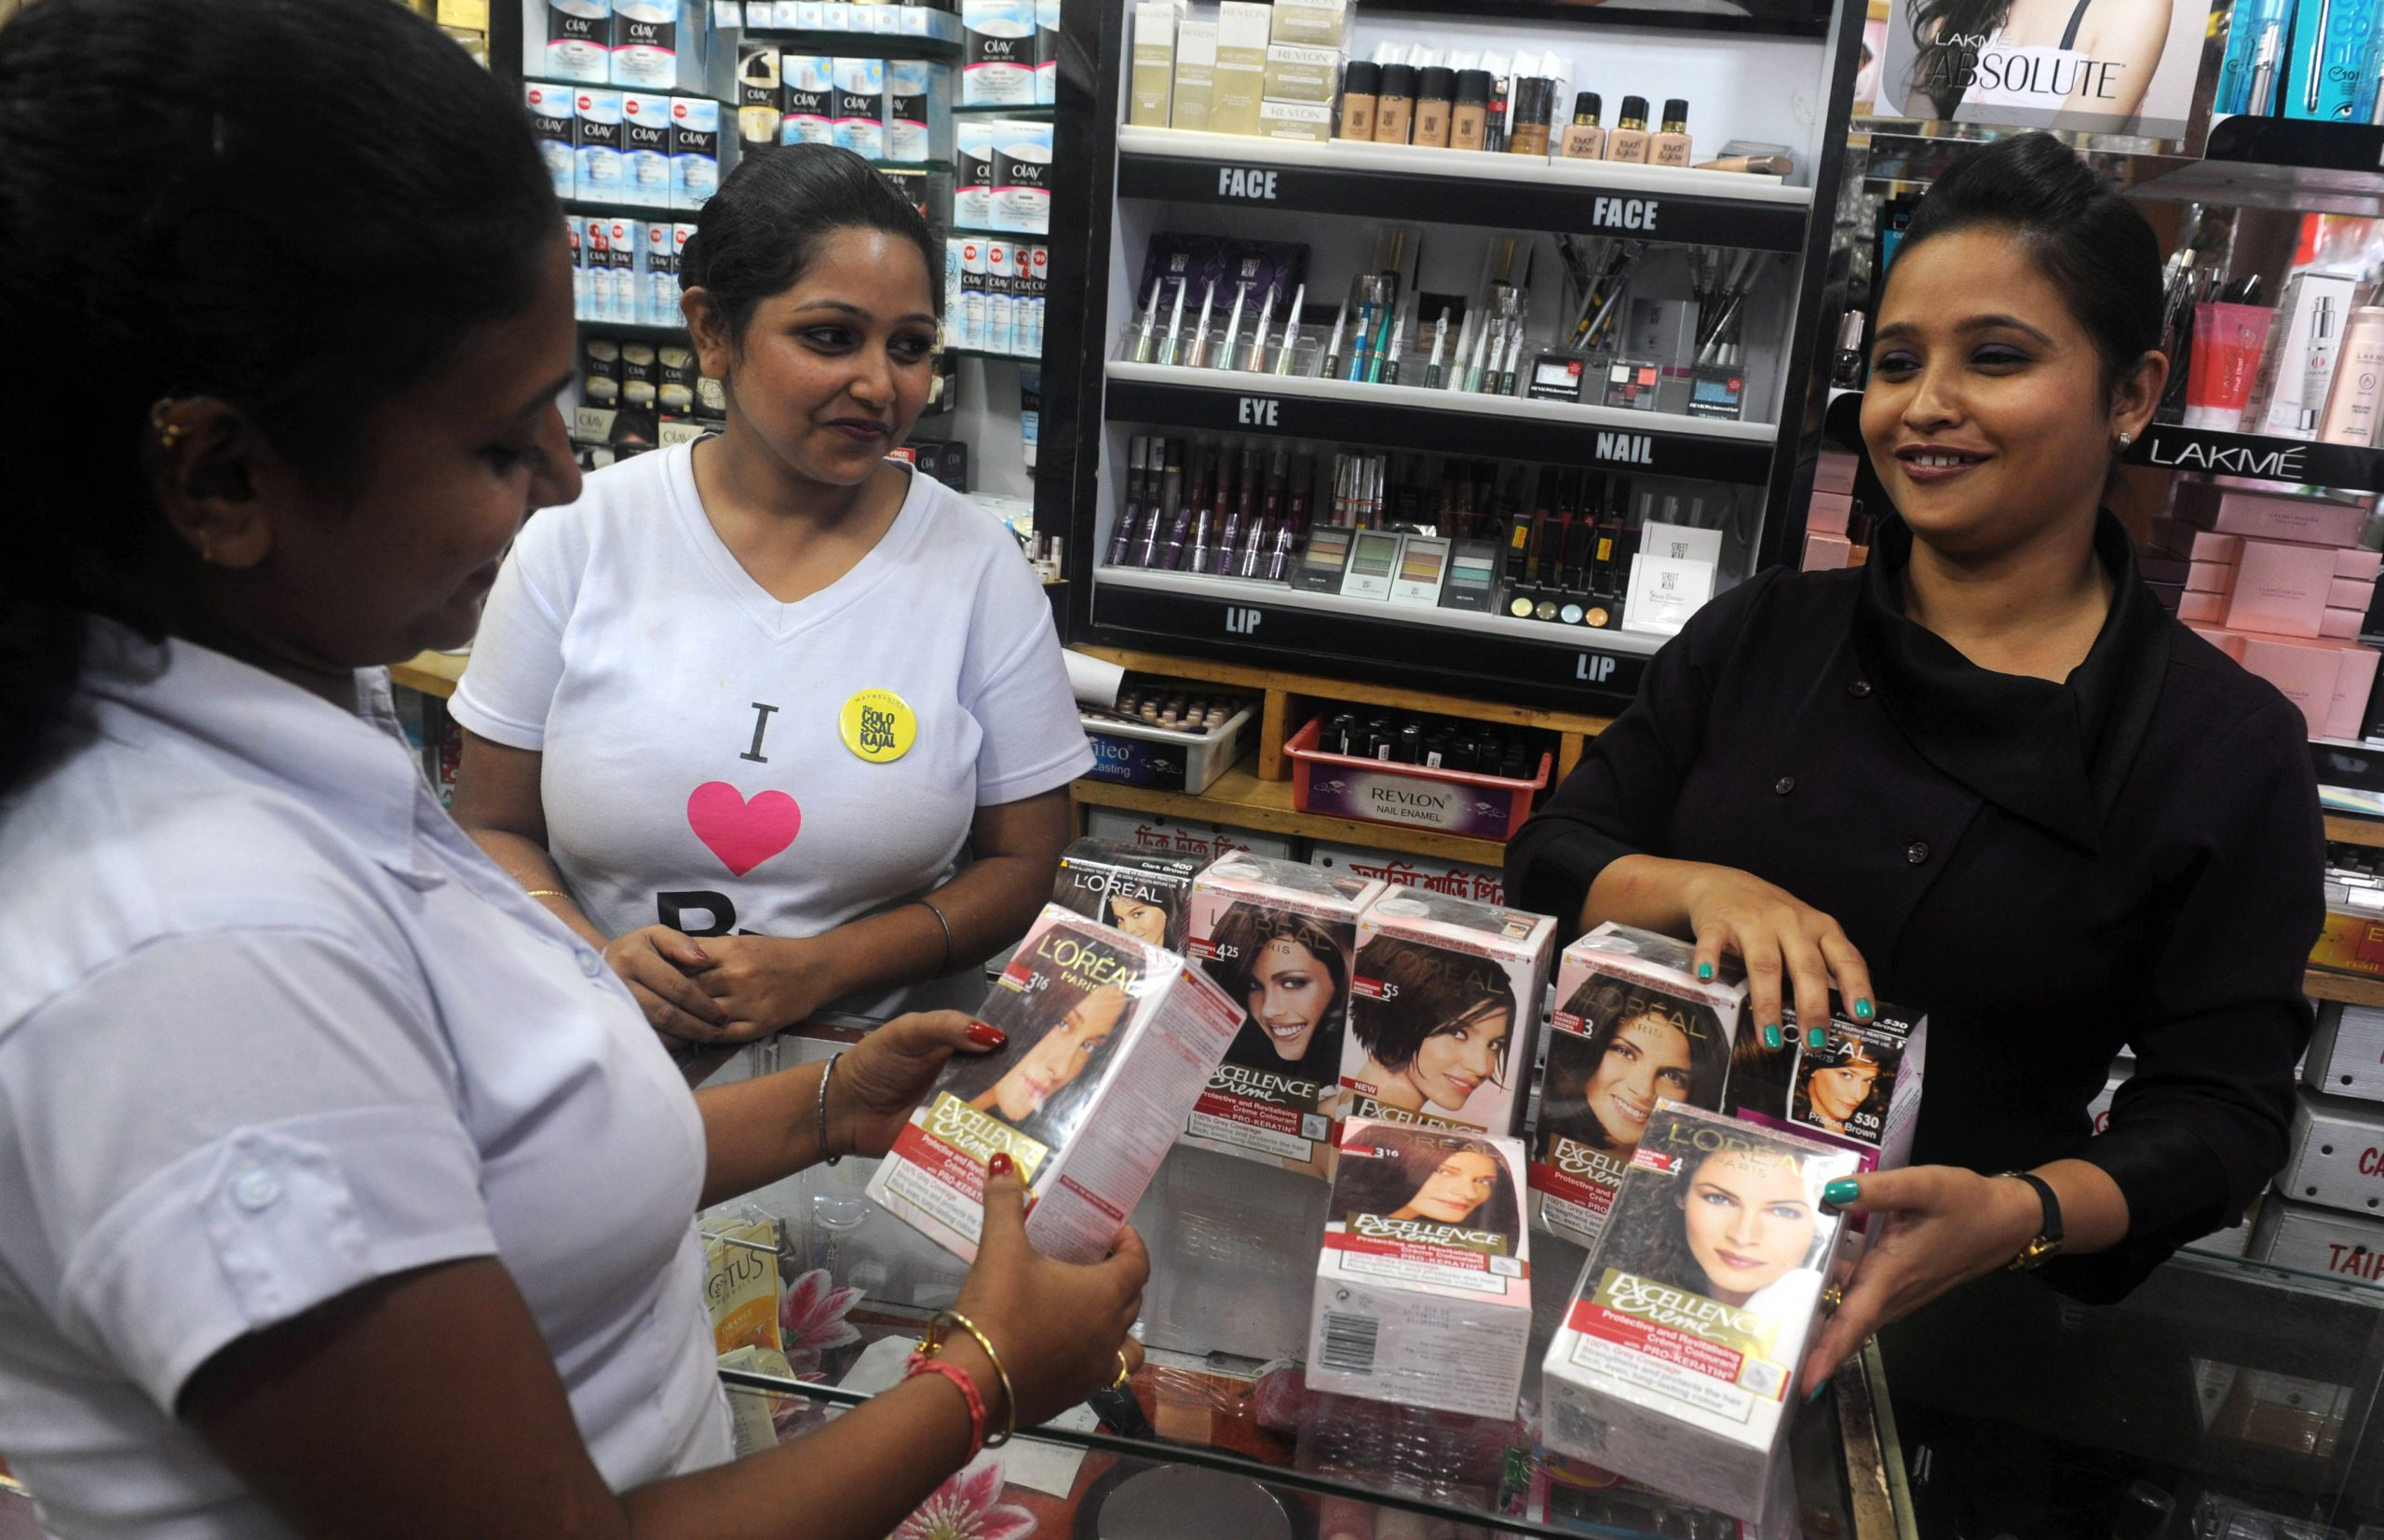 An Indian employee of a costemic shop displays L'oreal products in Siliguri on September 15,2012. Indian newspapers hailed September 15 a 'rush of reforms' unveiled by the government which has thrown open the retail and aviation sectors as well as tackled fuel subsidies in highly contentious moves. Shopkeepers, opposition parties and even an ally in the national coalition opposed the move on the grounds that it would destroy the livelihoods of the small business owners who dominate the retail sector. AFP PHOTO/Diptendu DUTTA        (Photo credit should read DIPTENDU DUTTA/AFP/GettyImages)